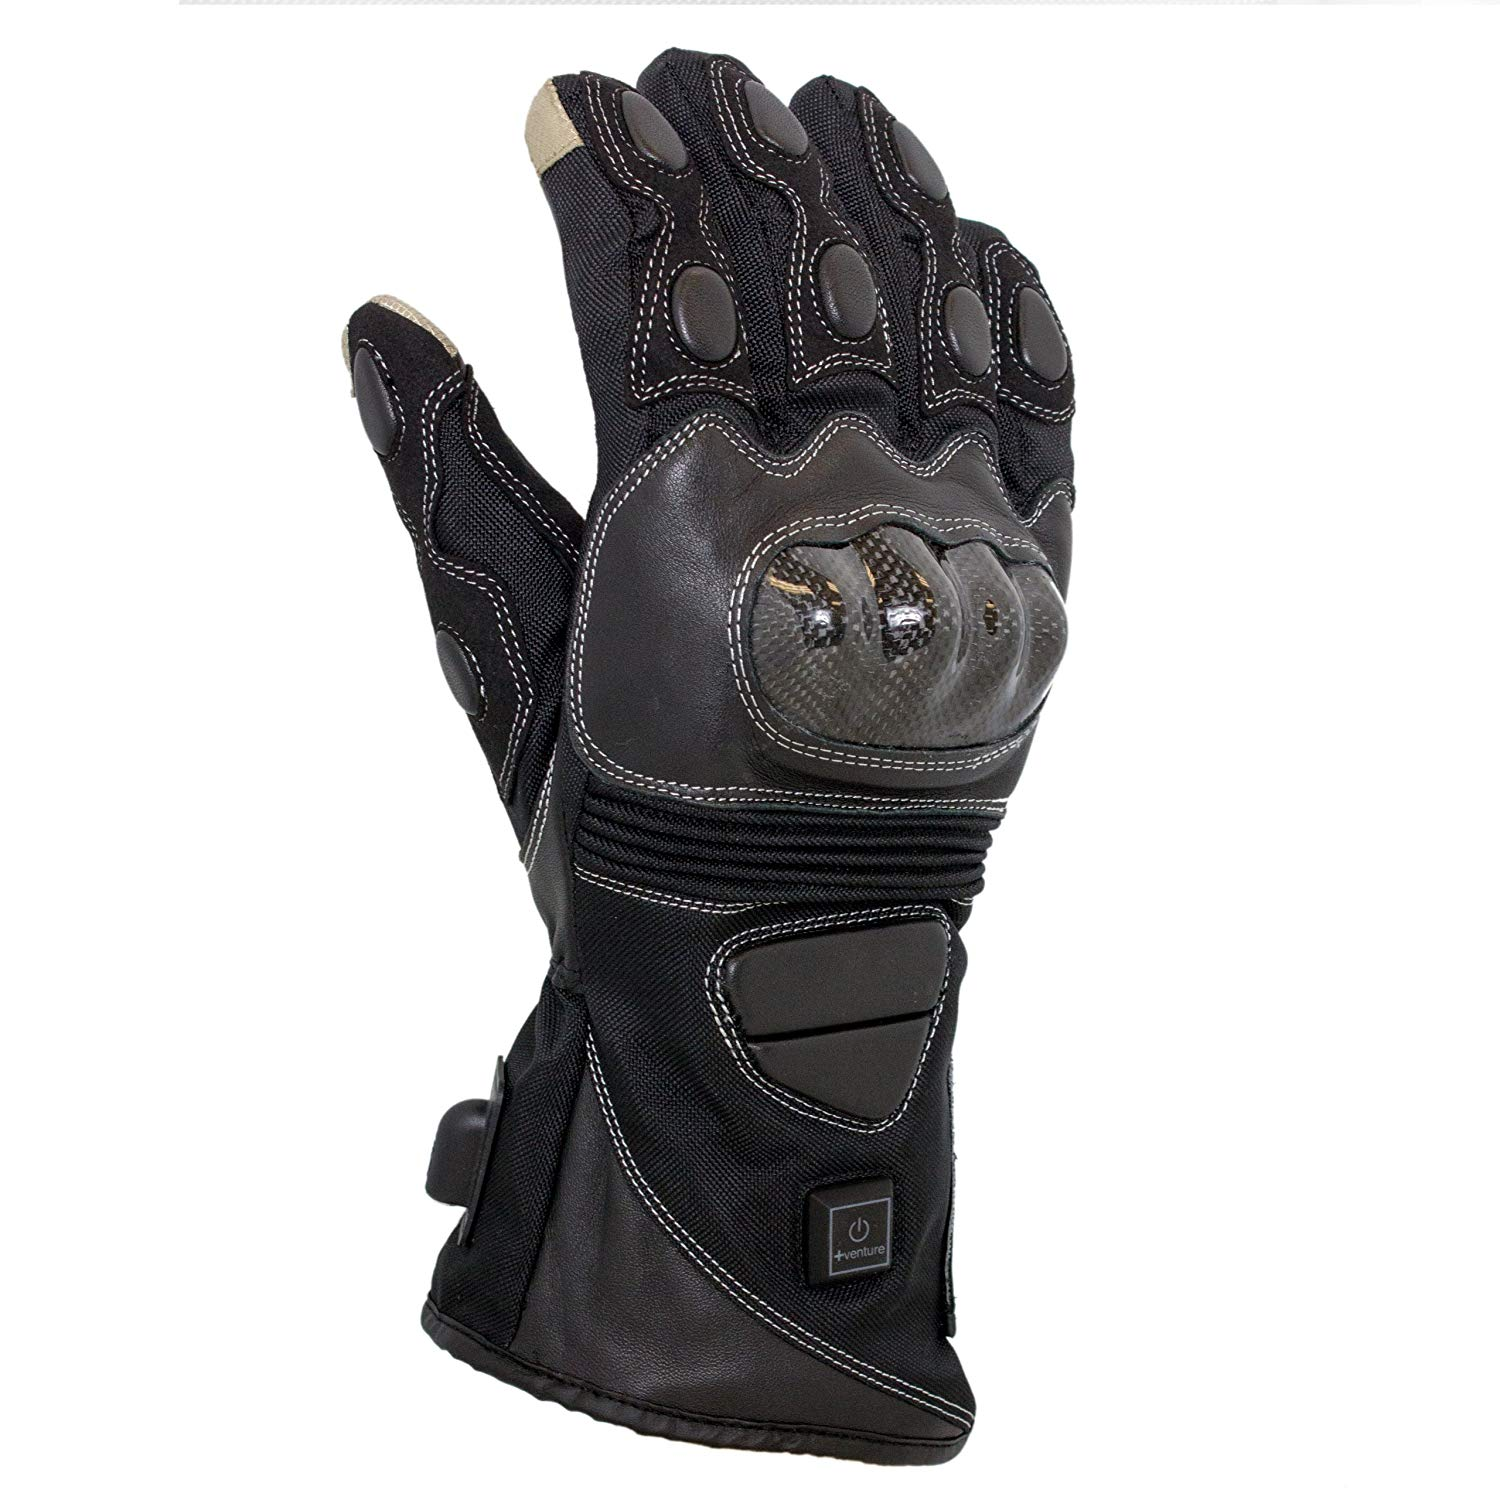 Best Heated Gloves In 2021 Reviews (For Both Man & Woman) 5